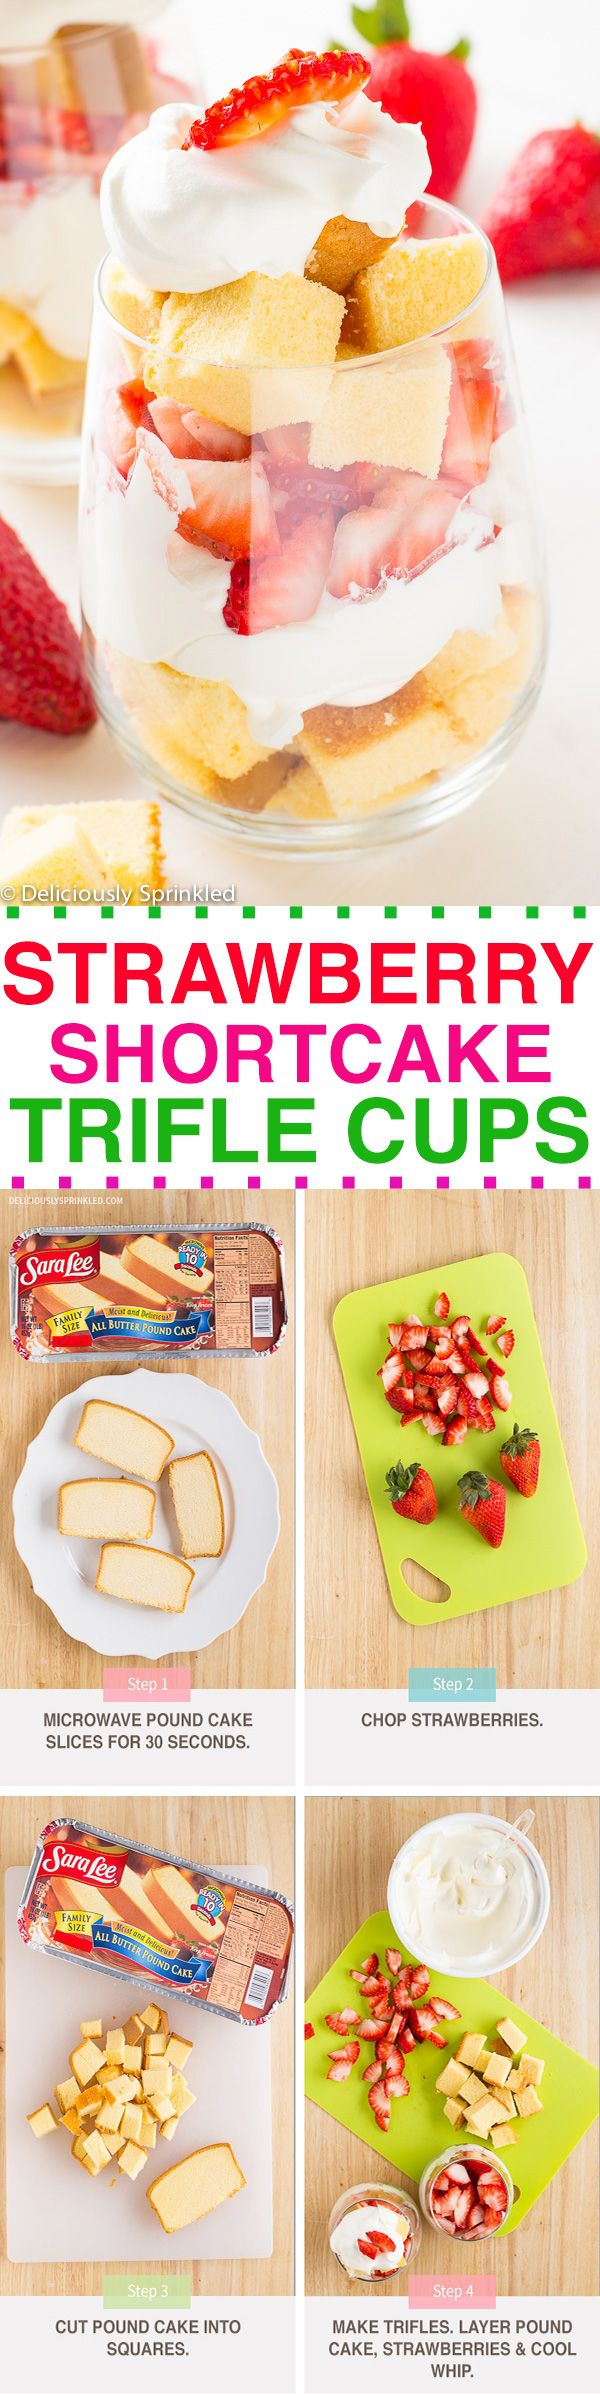 EASY TO MAKE: Strawberry Shortcake Trifle Cups